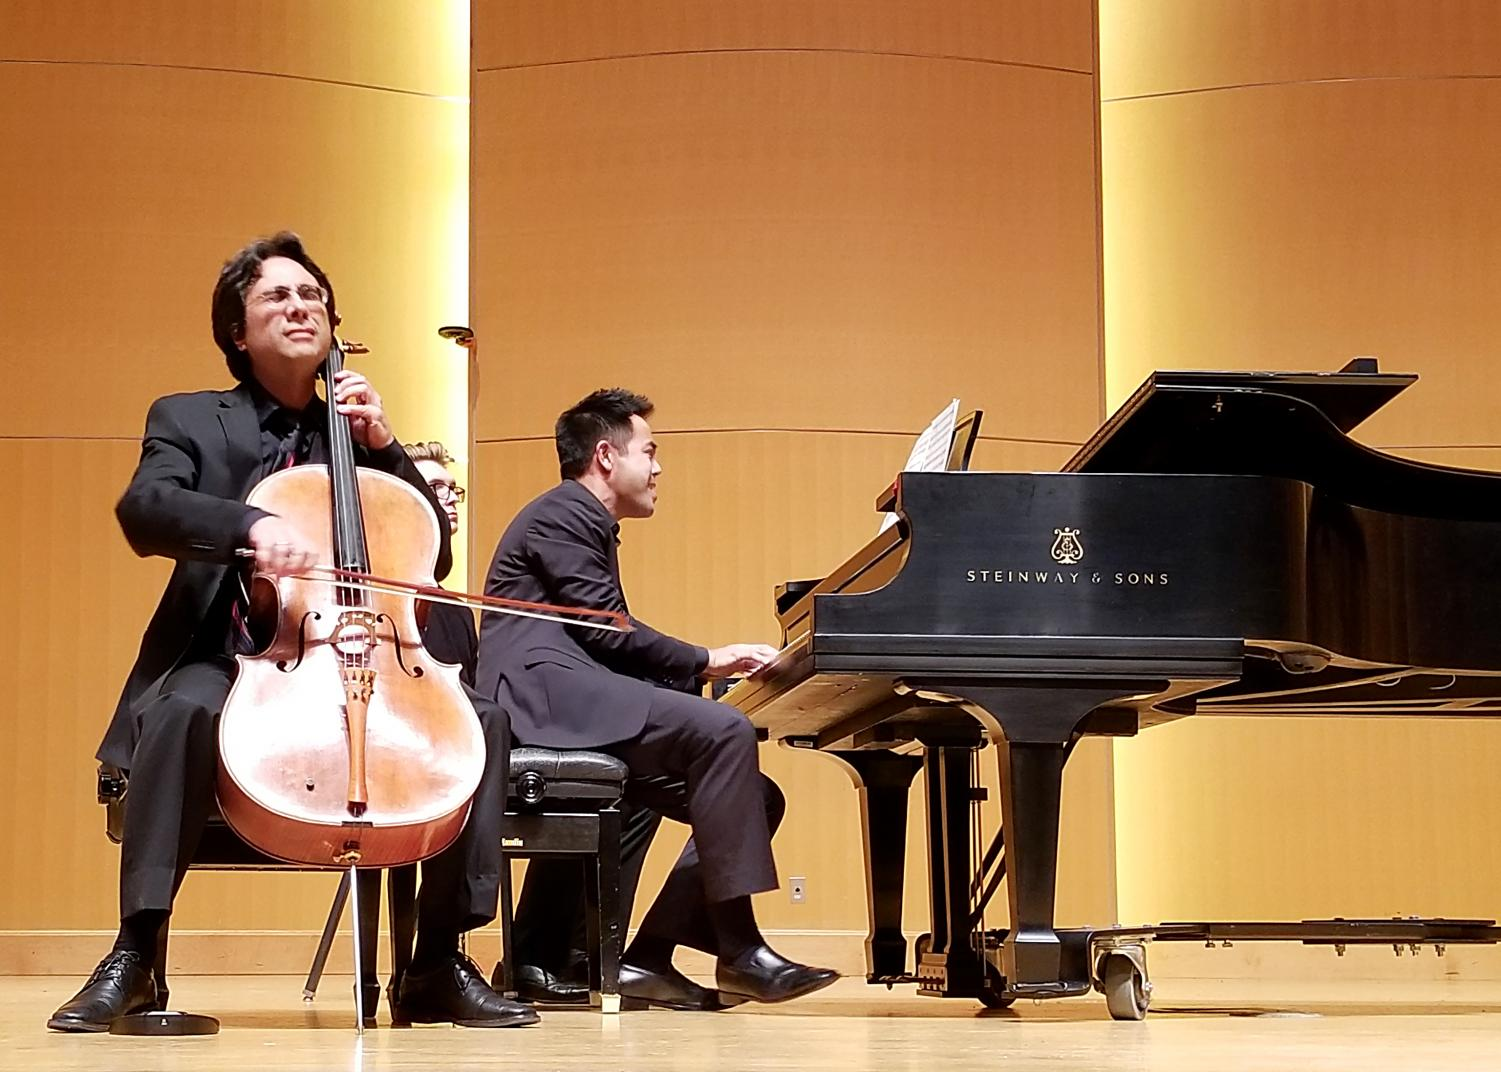 Professor John Michel and Nikolas Caoile performing Pampeana No. 2 by Alberto Ginastera at the Central Cello Celebration Finale Concert Saturday night.